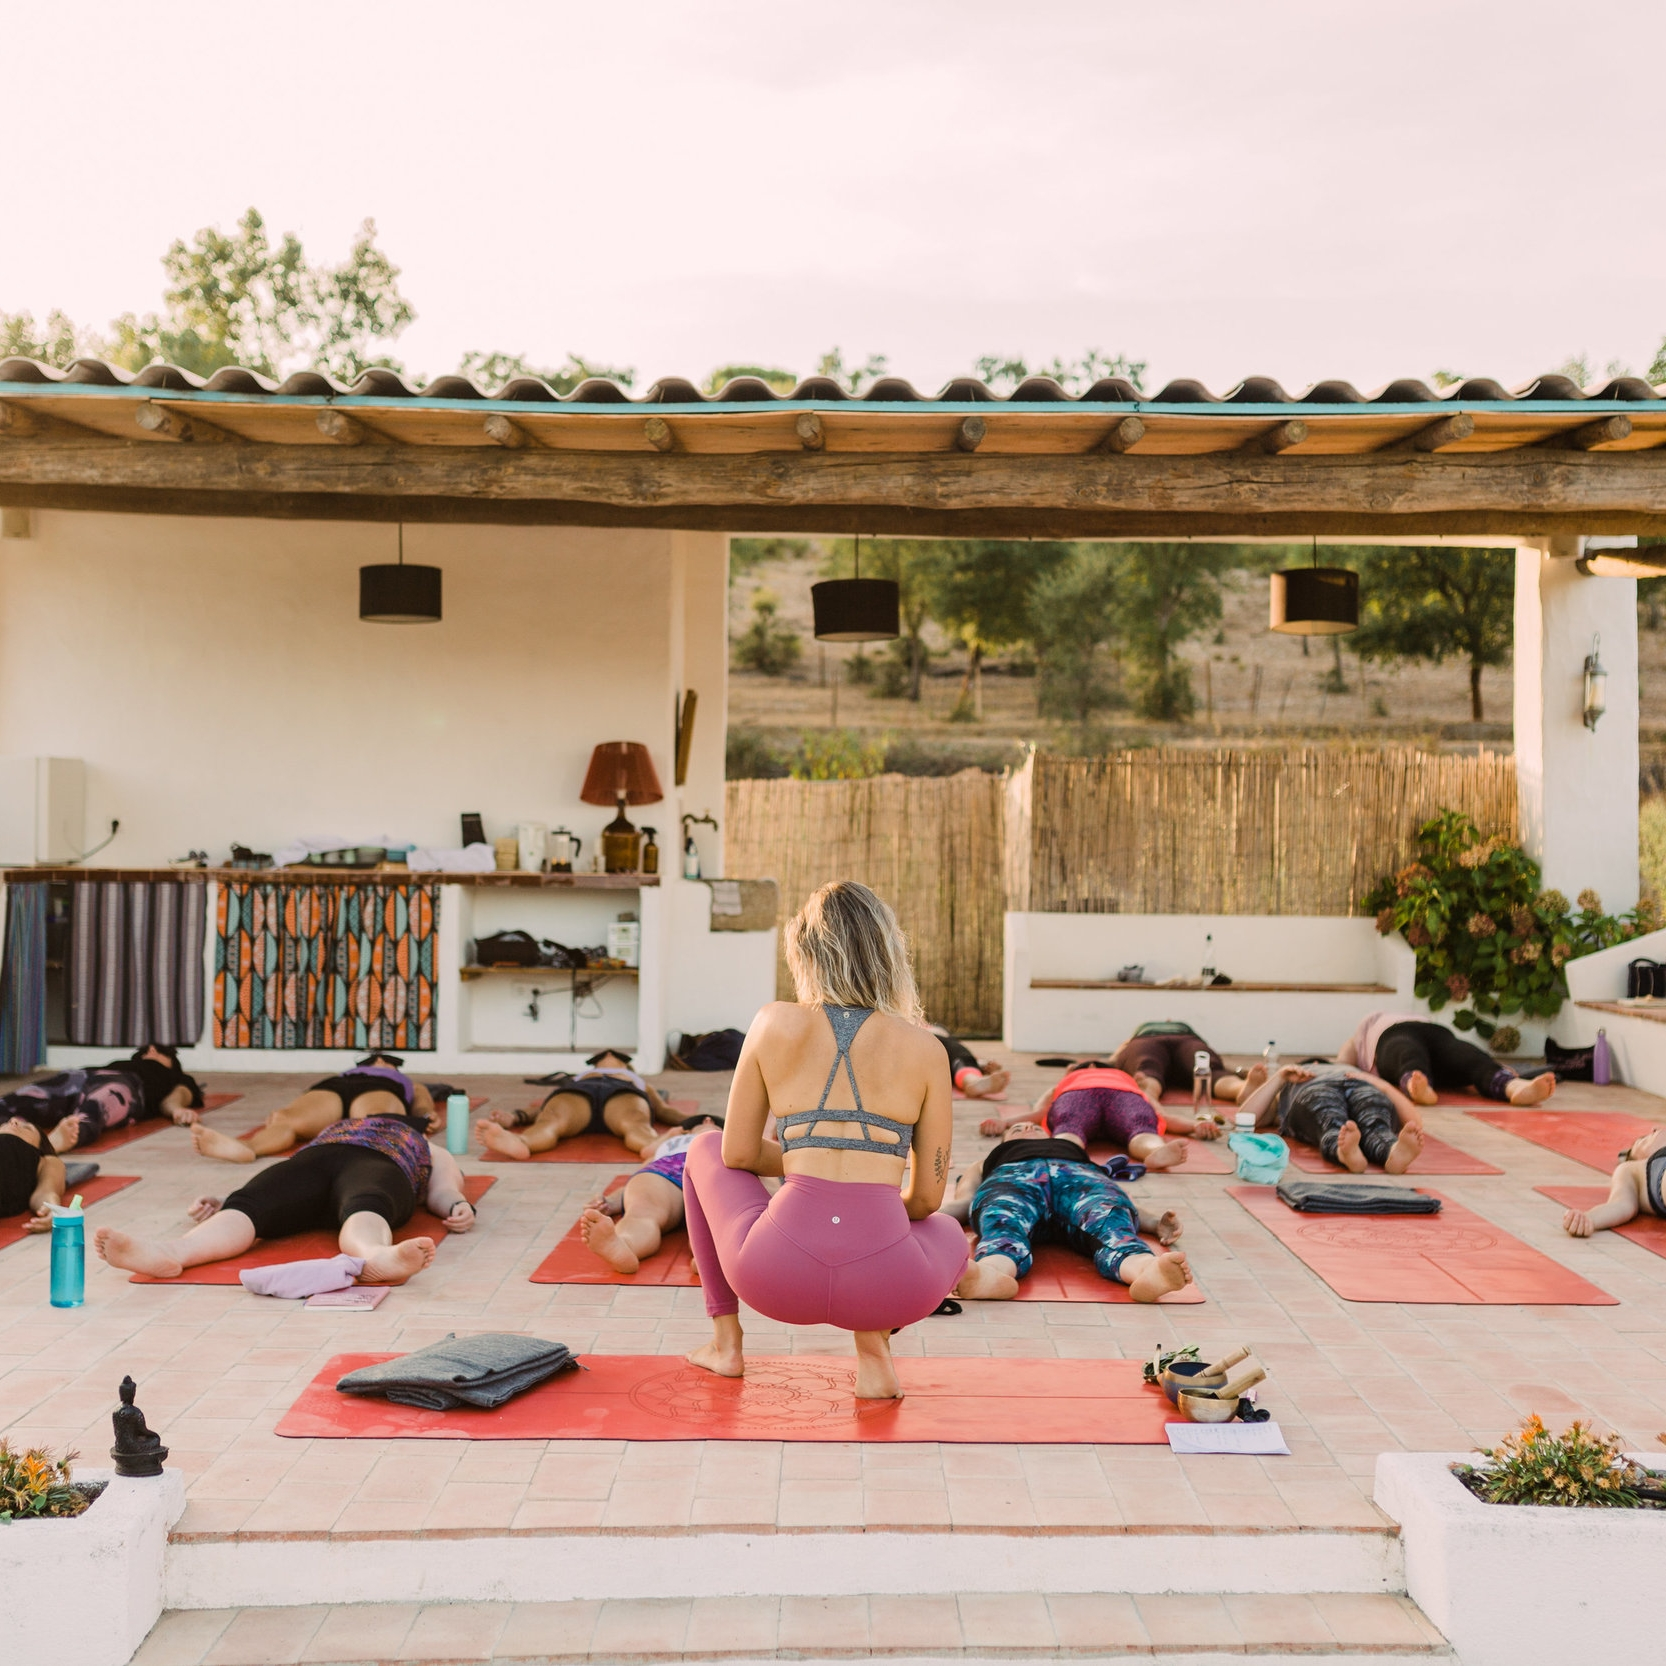 together we move - We move to feel good, to liberate ourselves, to find more space, to cleanse our body, to feel energised.In our retreat we bring the Yin and the Yang together offering different practices from meditation to dynamic vinyasa and HIIT class and restorative yoga.